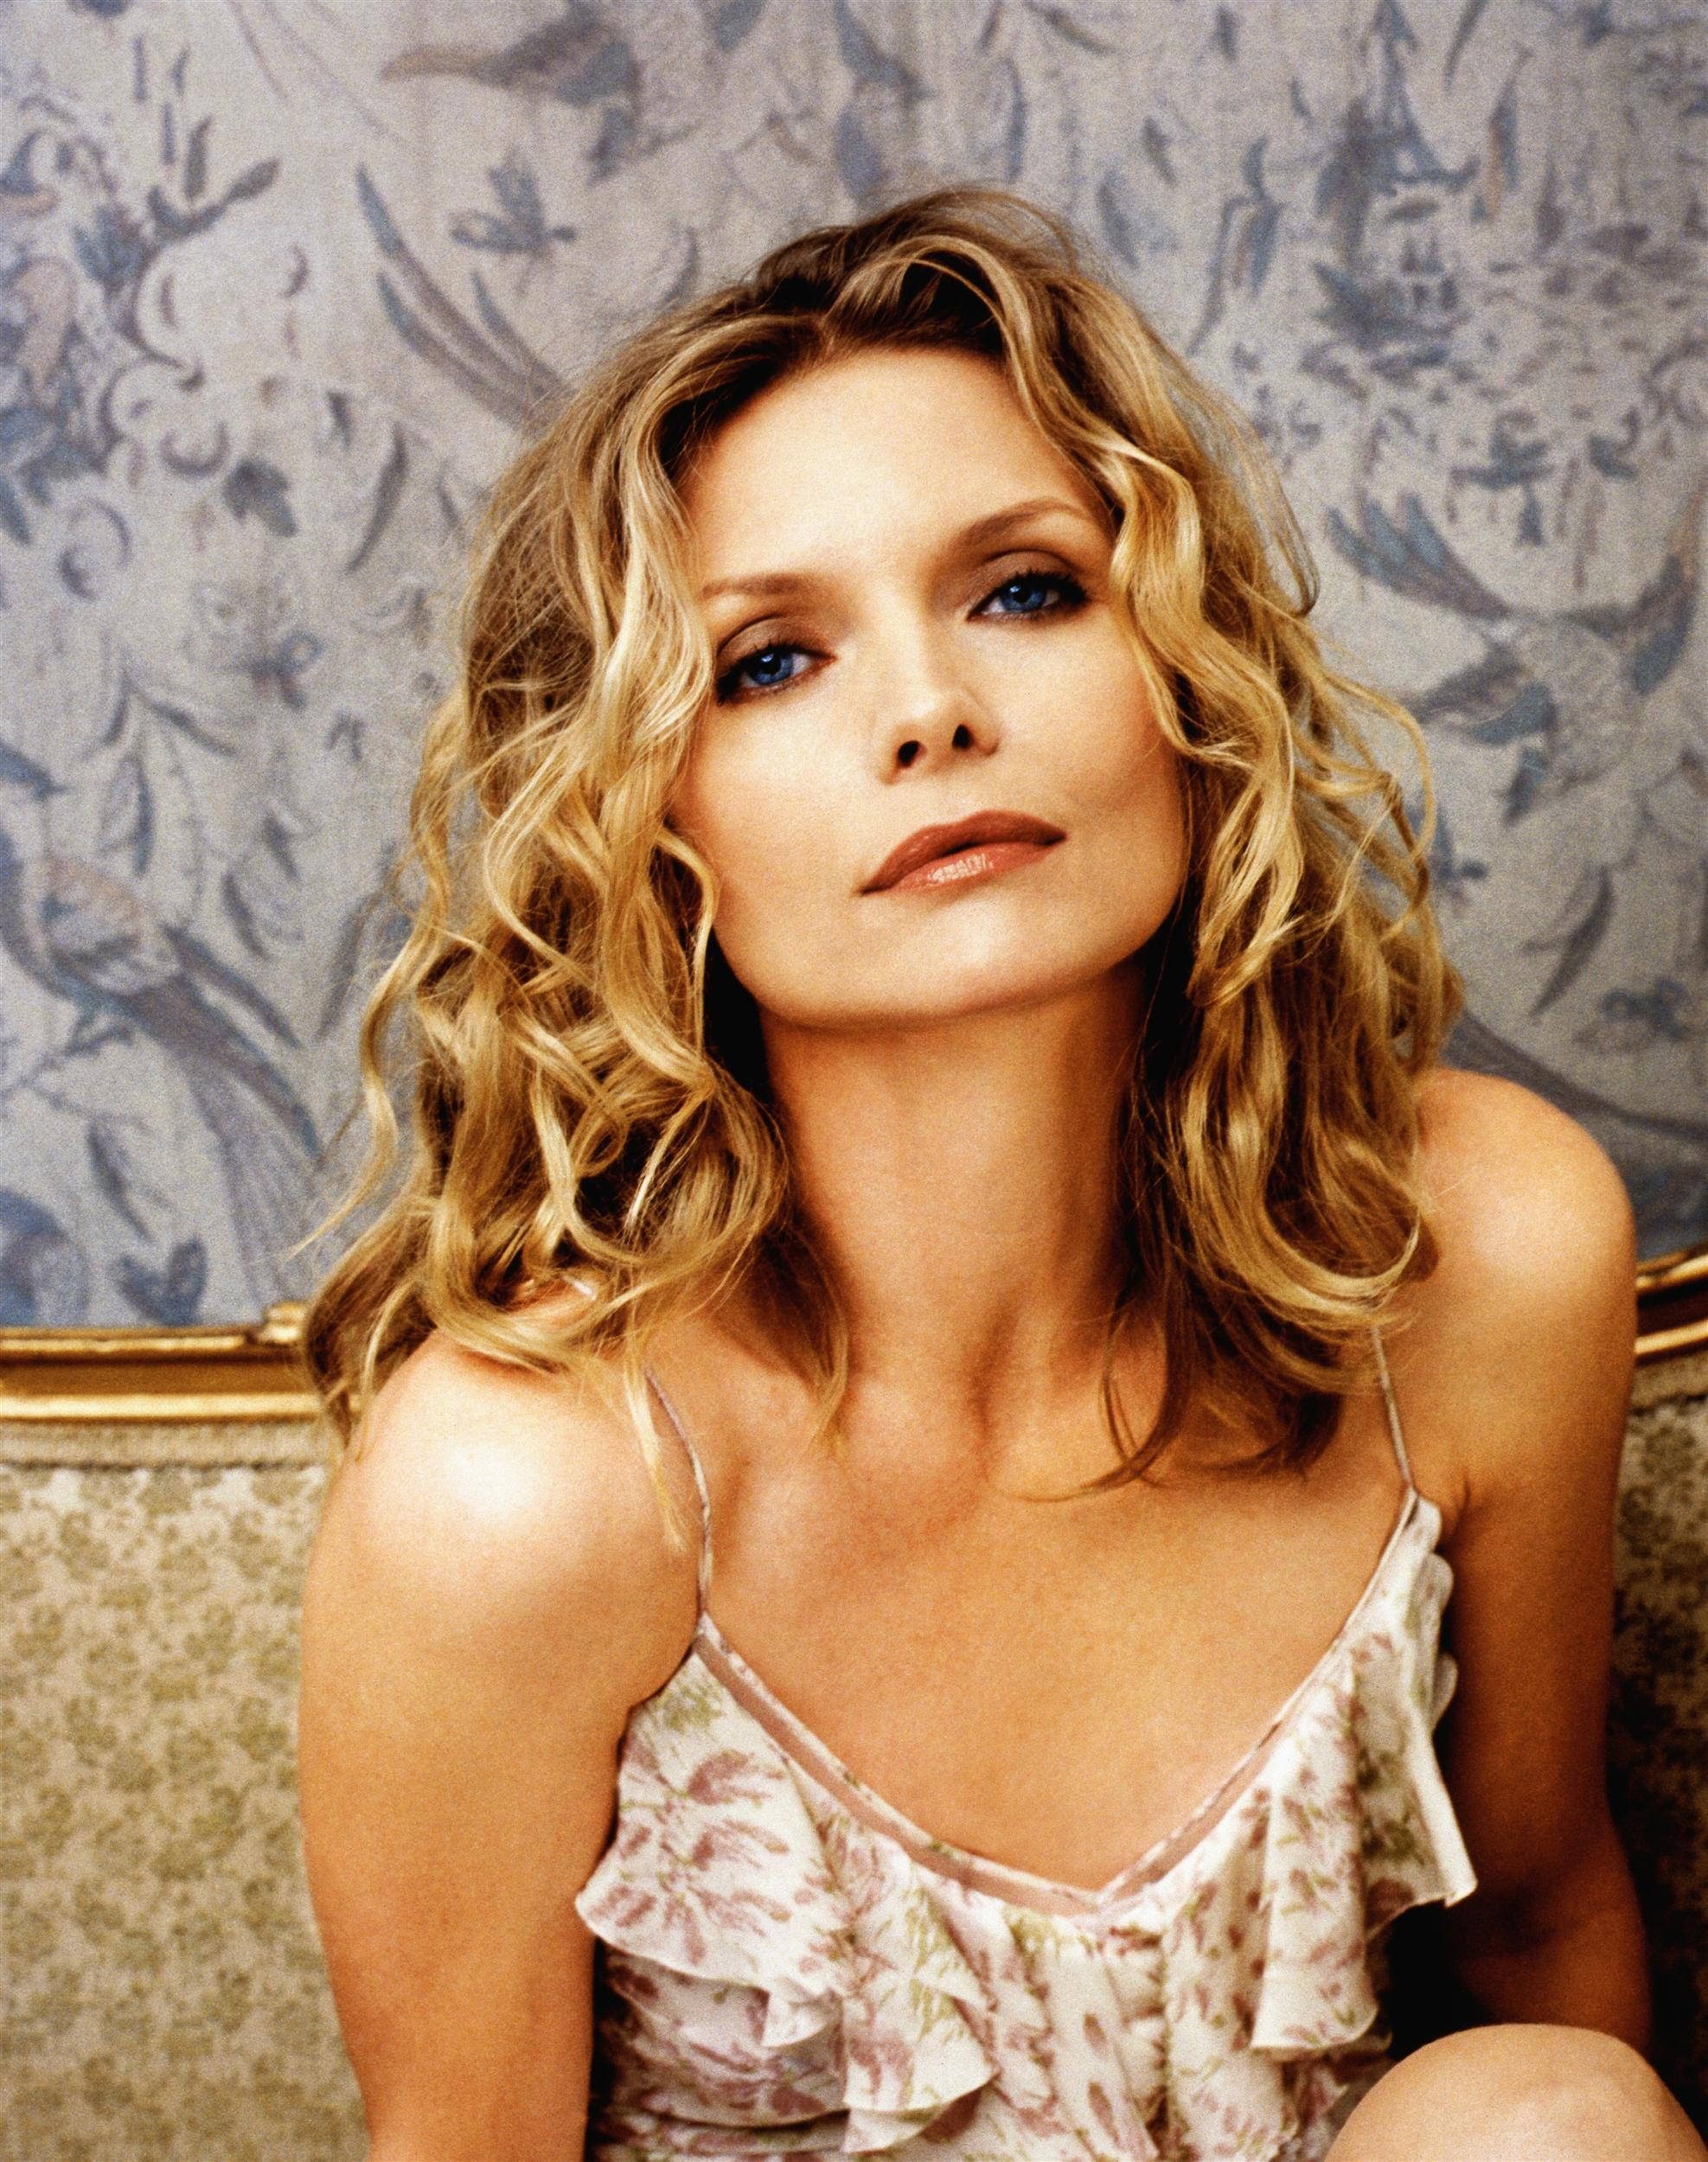 michelle pfeiffer kelleymichelle pfeiffer 2016, michelle pfeiffer young, michelle pfeiffer scarface, michelle pfeiffer catwoman, michelle pfeiffer 2017, michelle pfeiffer batman, michelle pfeiffer movies, michelle pfeiffer films, michelle pfeiffer filmography, michelle pfeiffer coolio, michelle pfeiffer interview, michelle pfeiffer tumblr, michelle pfeiffer wikipedia, michelle pfeiffer twitter, michelle pfeiffer imdb, michelle pfeiffer kelley, michelle pfeiffer my funny valentine, michelle pfeiffer 1980, michelle pfeiffer surgery, michelle pfeiffer vk